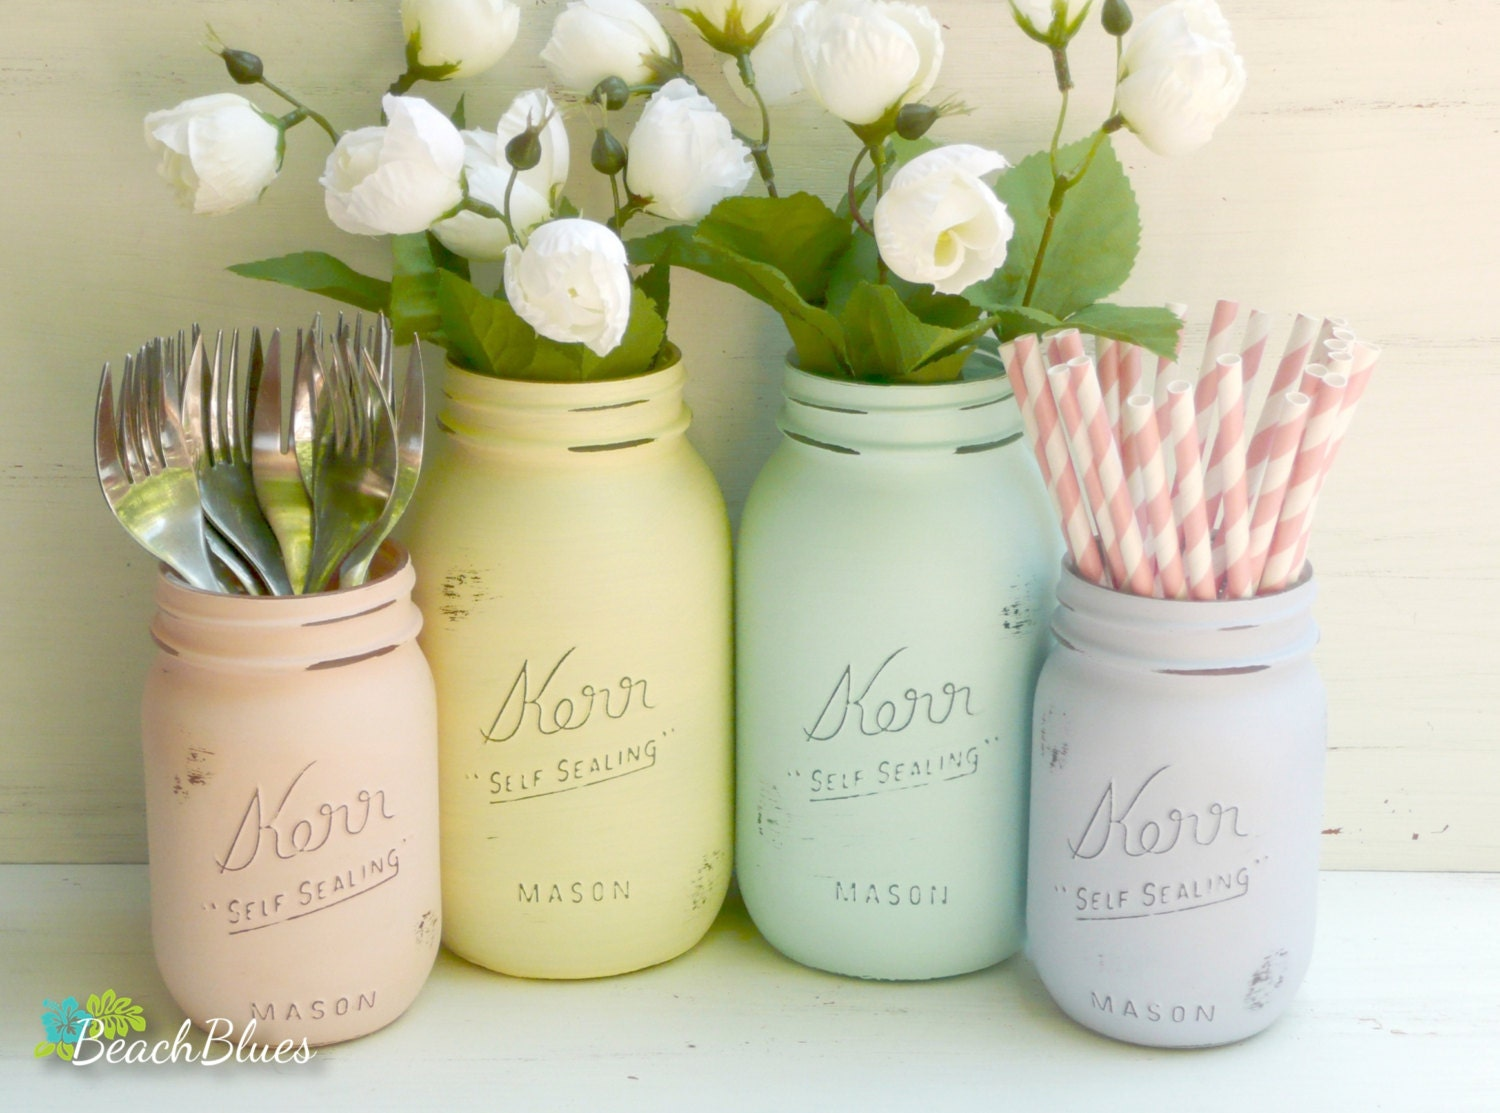 Easter Decor / Spring Decor / Centerpiece / Pastel / Home Decor / Painted Mason Jar / Table Decor / Vase / set of 4